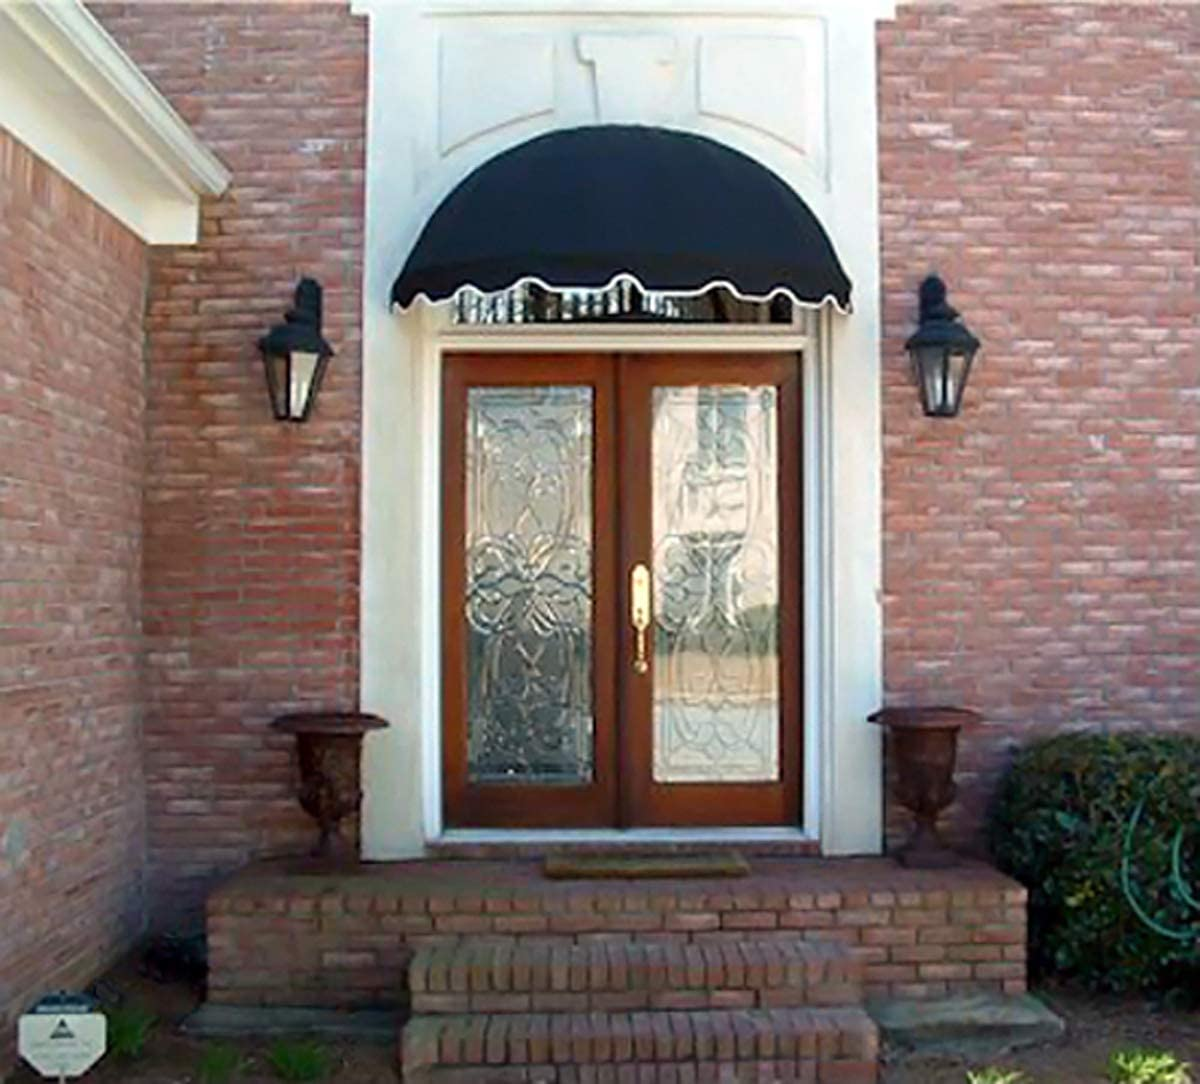 Dome Style Window Awning or Door Canopy 5 Wide in Sunbrella Awning Fabric – Black